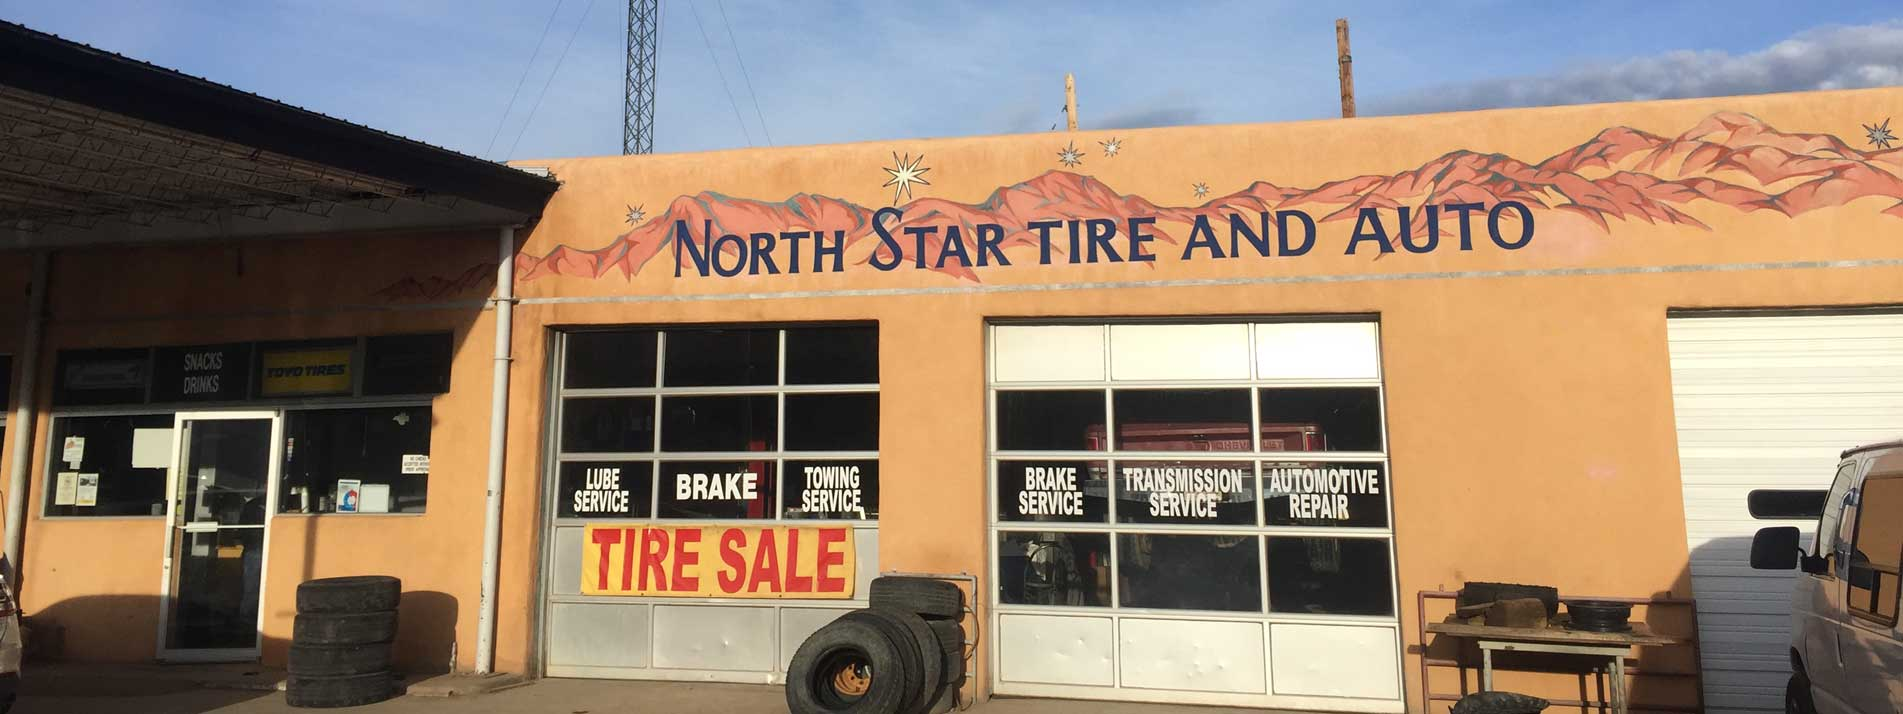 About Northstar Tire & Auto Repair Shop Mechanics in Questa, NM